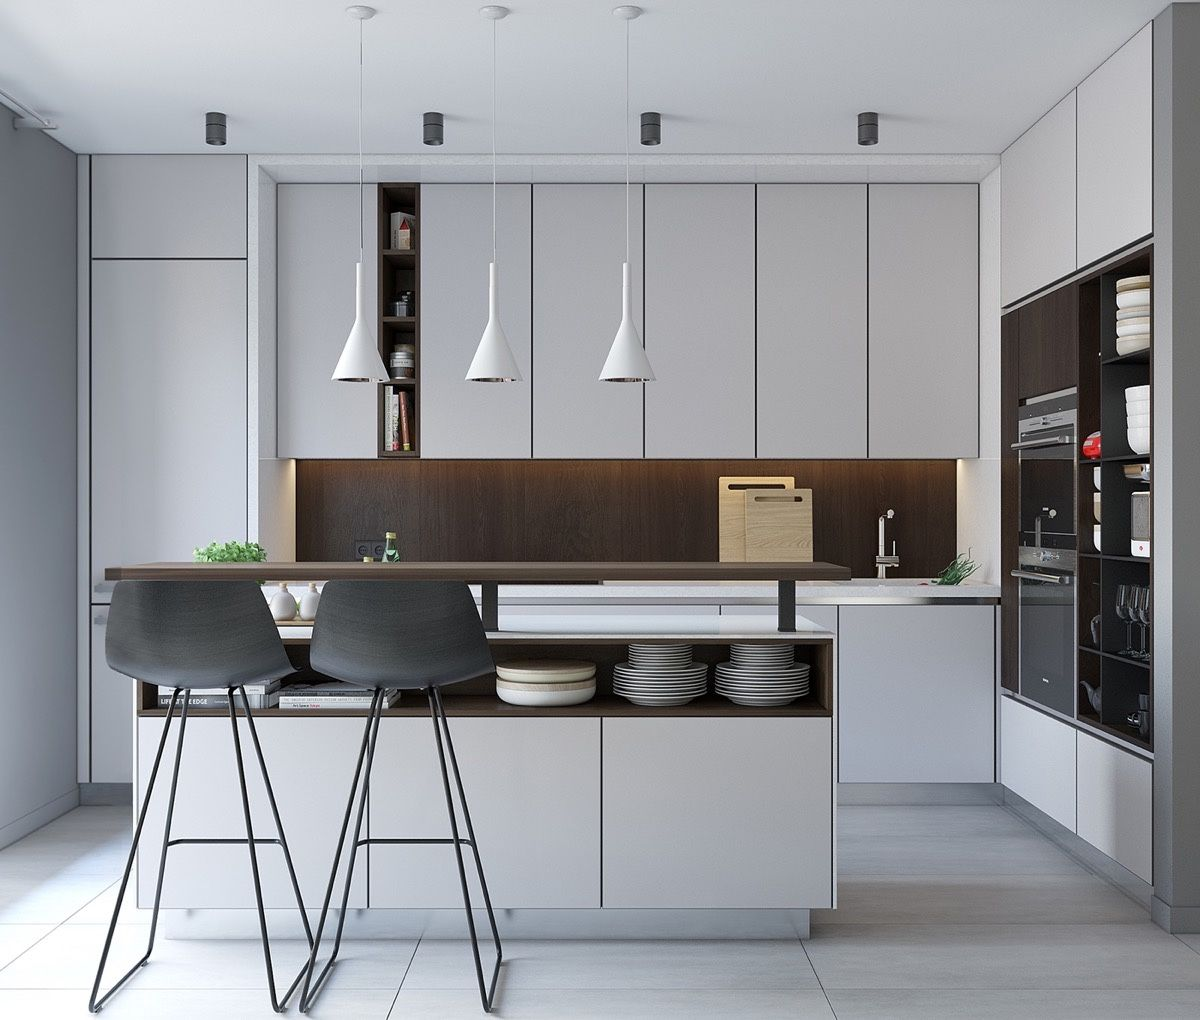 . 40 Minimalist Kitchens to Get Super Sleek Inspiration   Kitchen